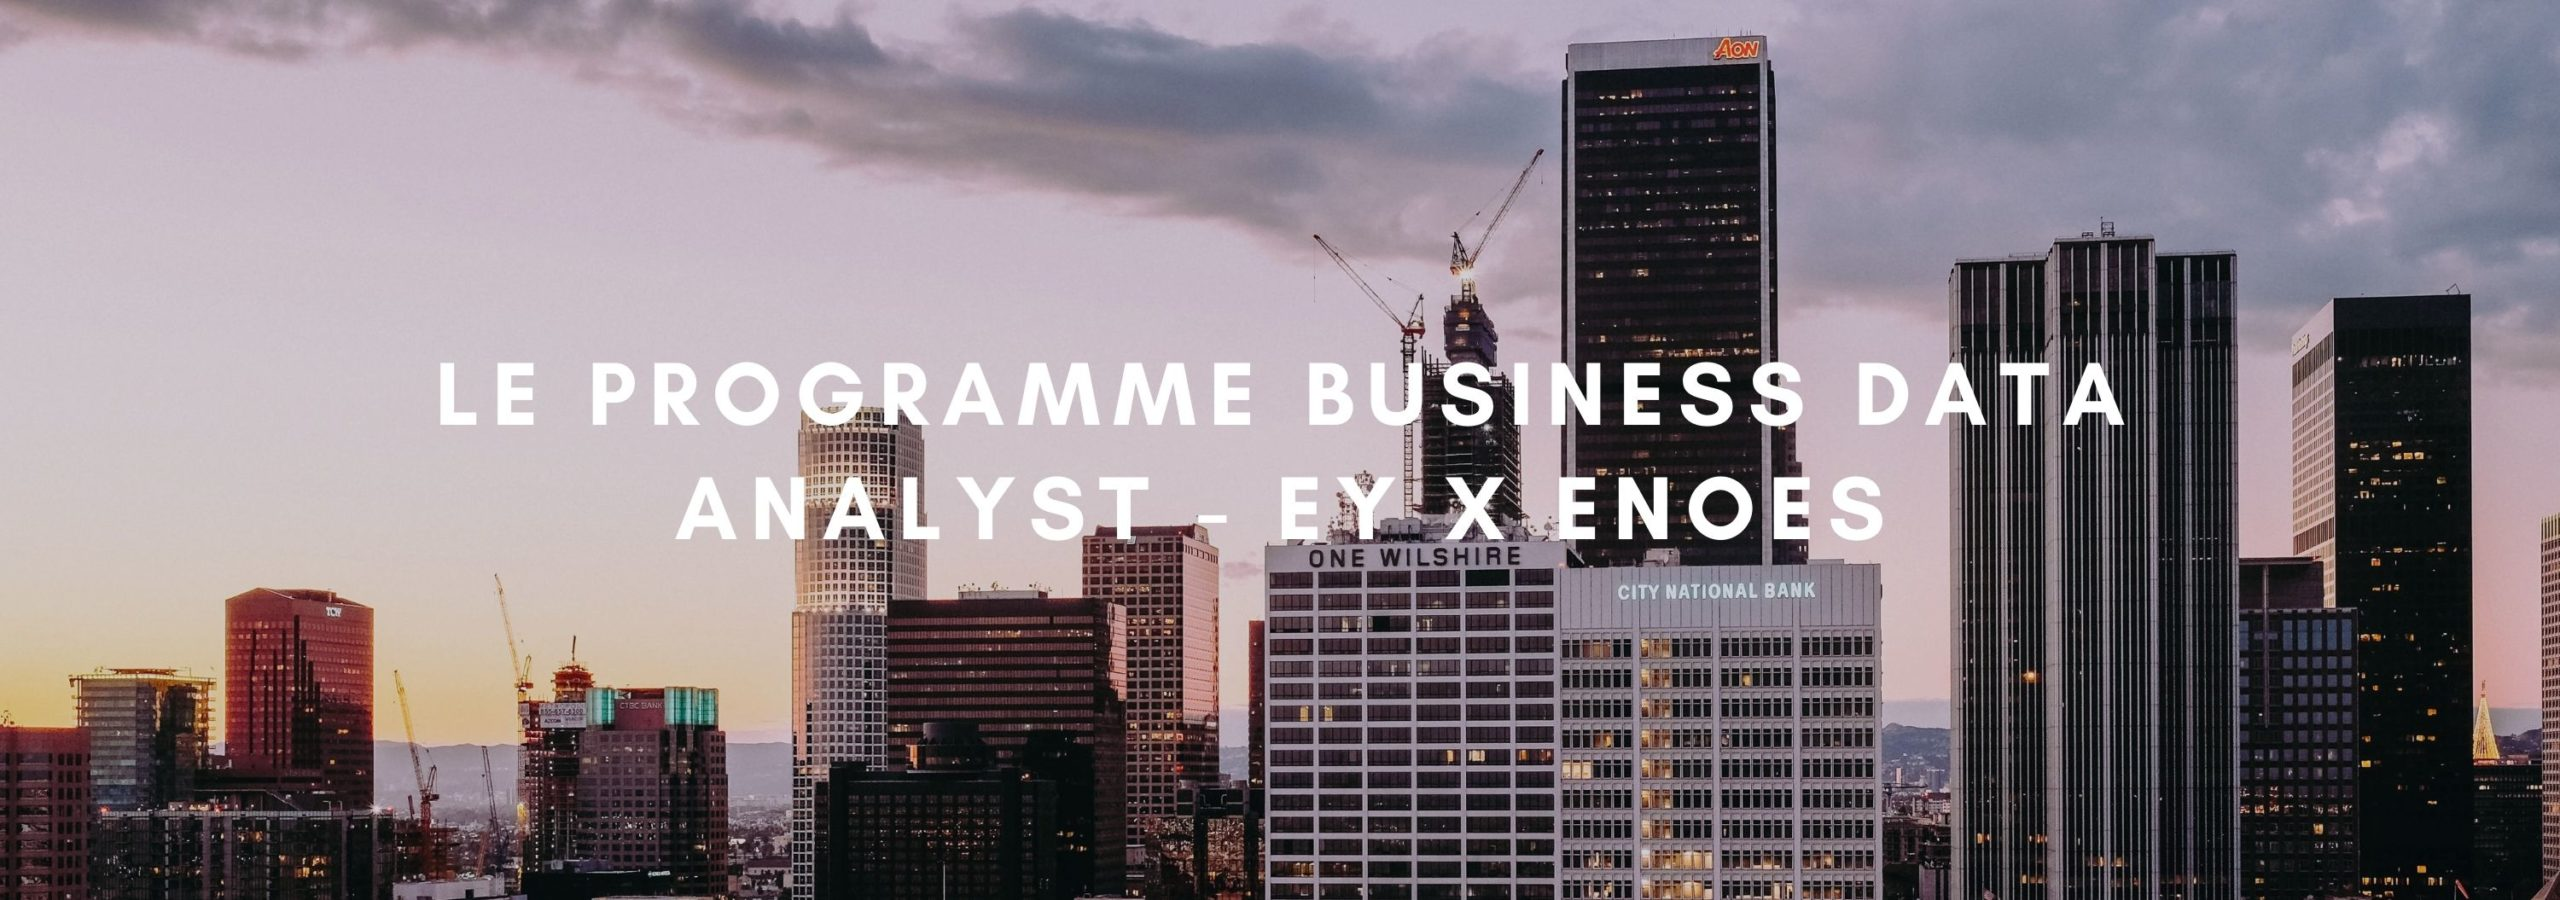 Le Programme Business Data Analyst - EY x ENOES